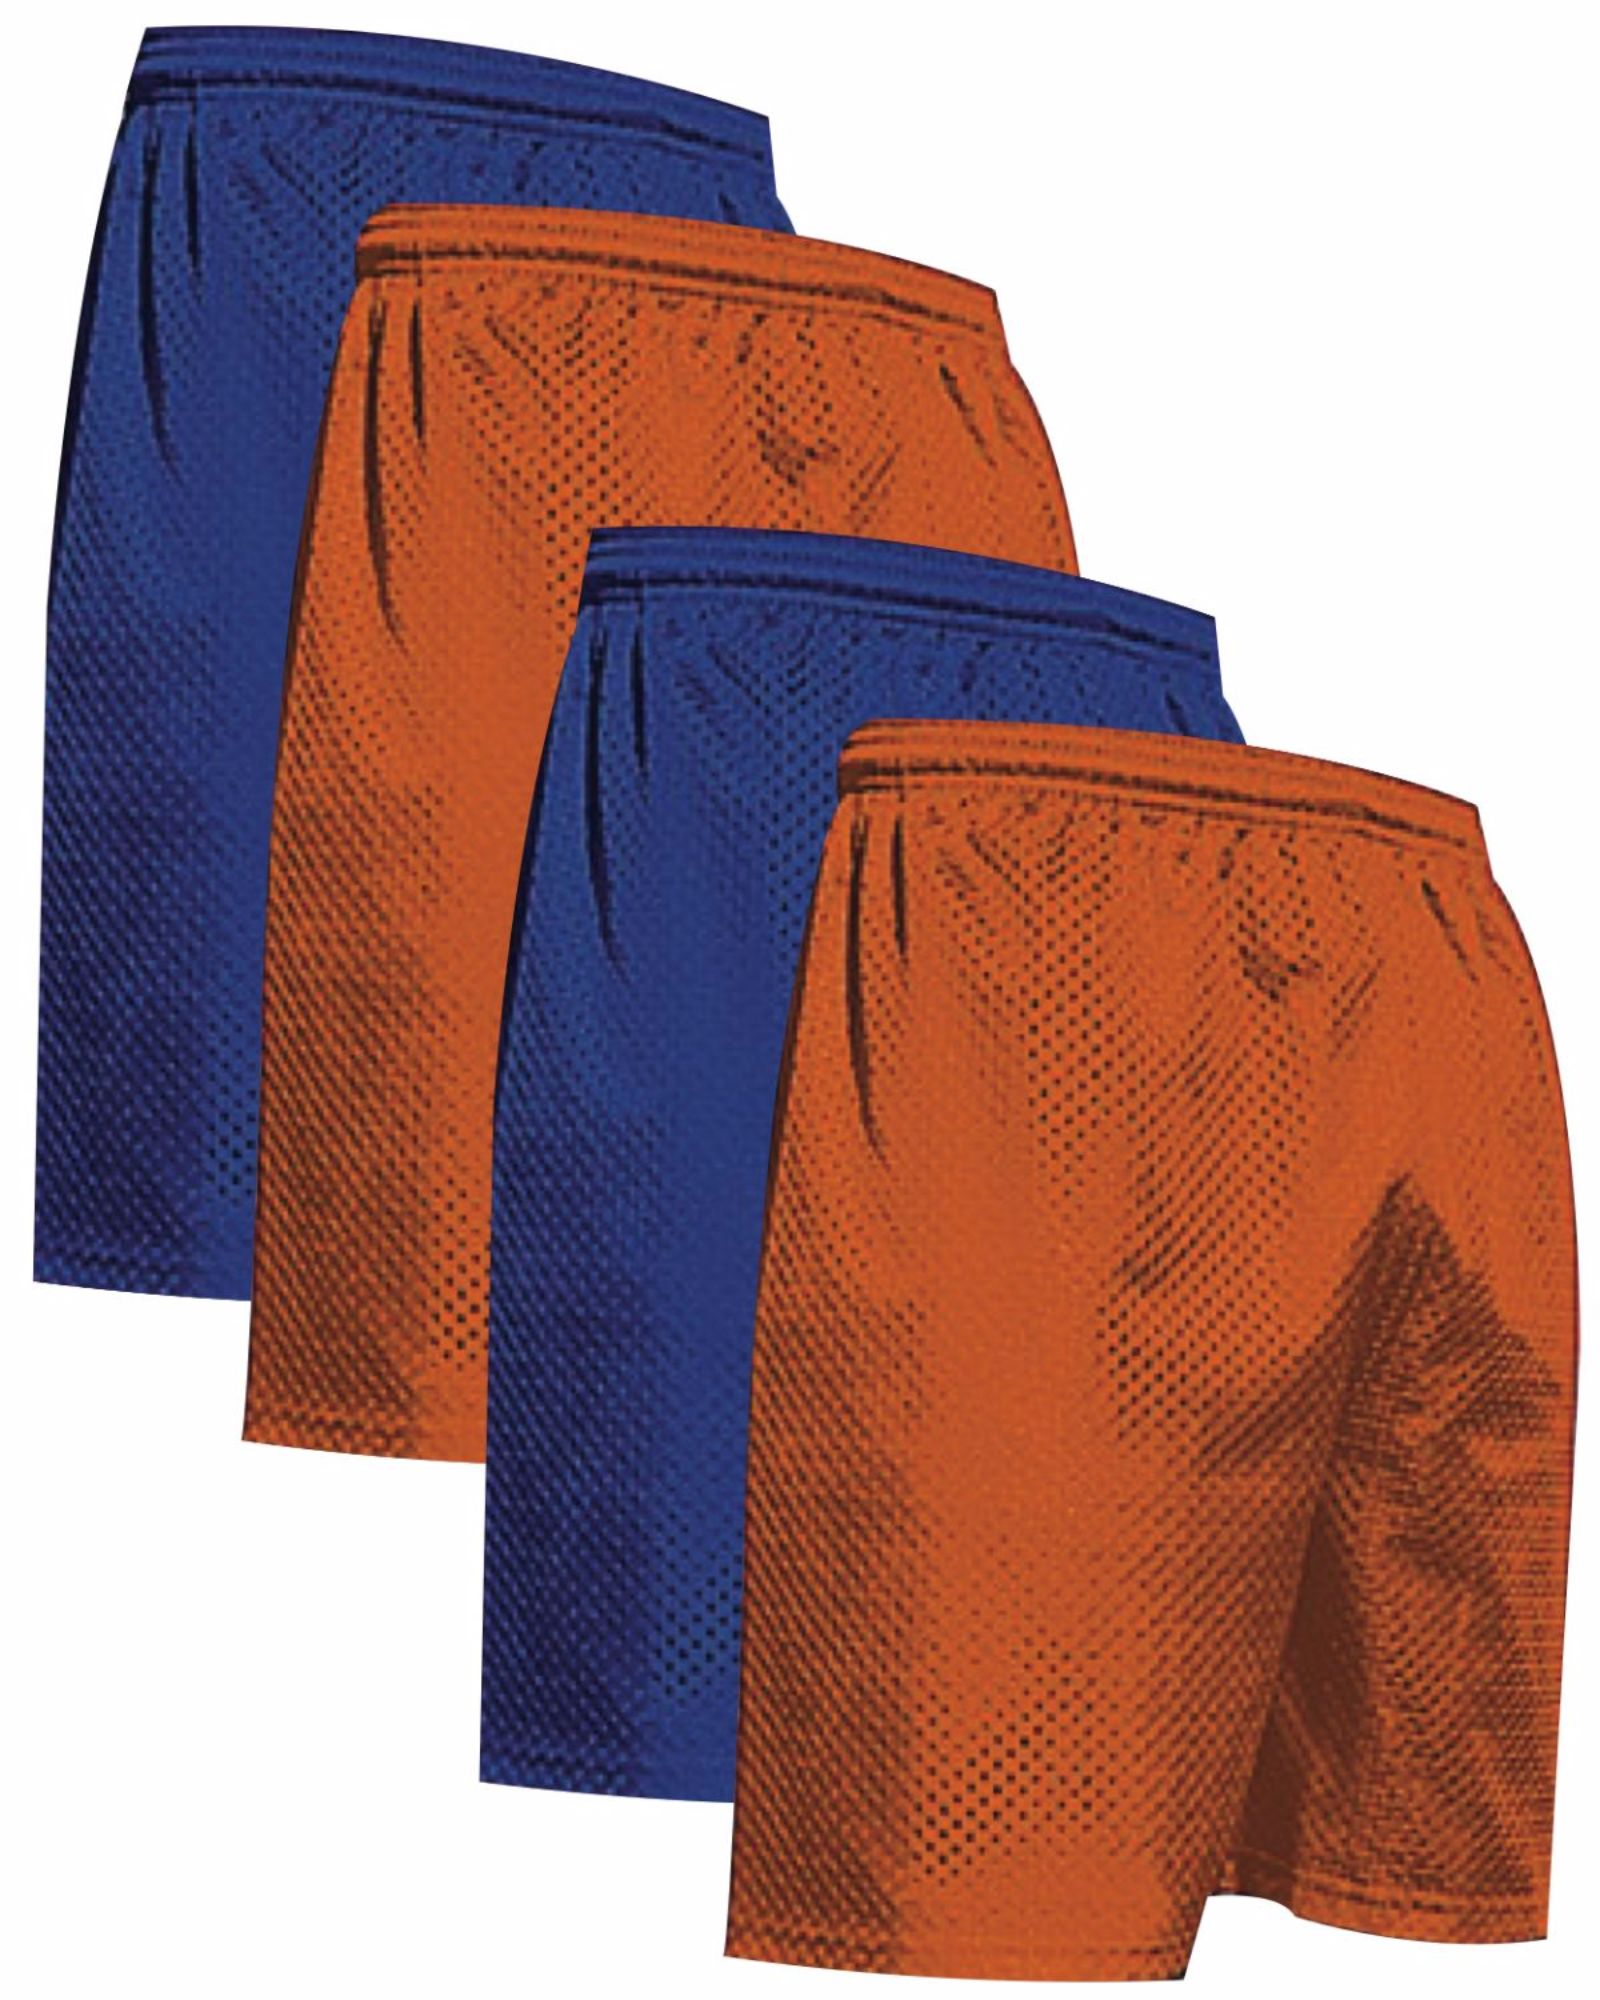 "VALUE PACK  > BUY 2 GET 2 FREE >  4 PACK > THE RAM BRAND > Men's  9"" Performance Pro Mesh Gym Champ Shorts (XS-4XL) $10 S/H is on the 1st Pack only. In this Pack: (3XL)(2Royal/2Orange)"